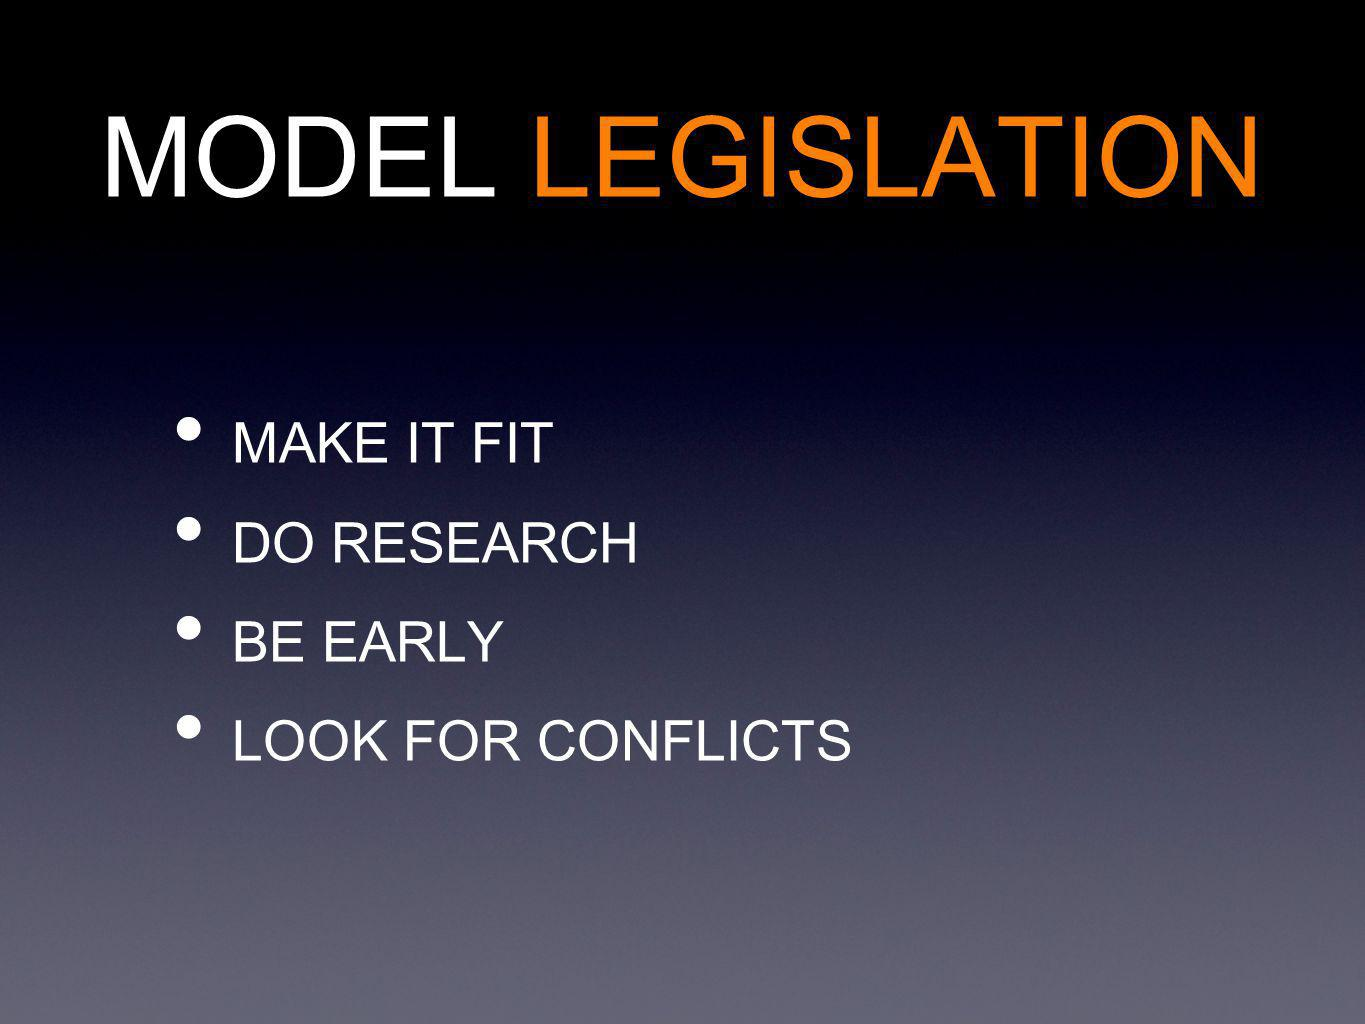 MODEL LEGISLATION MAKE IT FIT DO RESEARCH BE EARLY LOOK FOR CONFLICTS